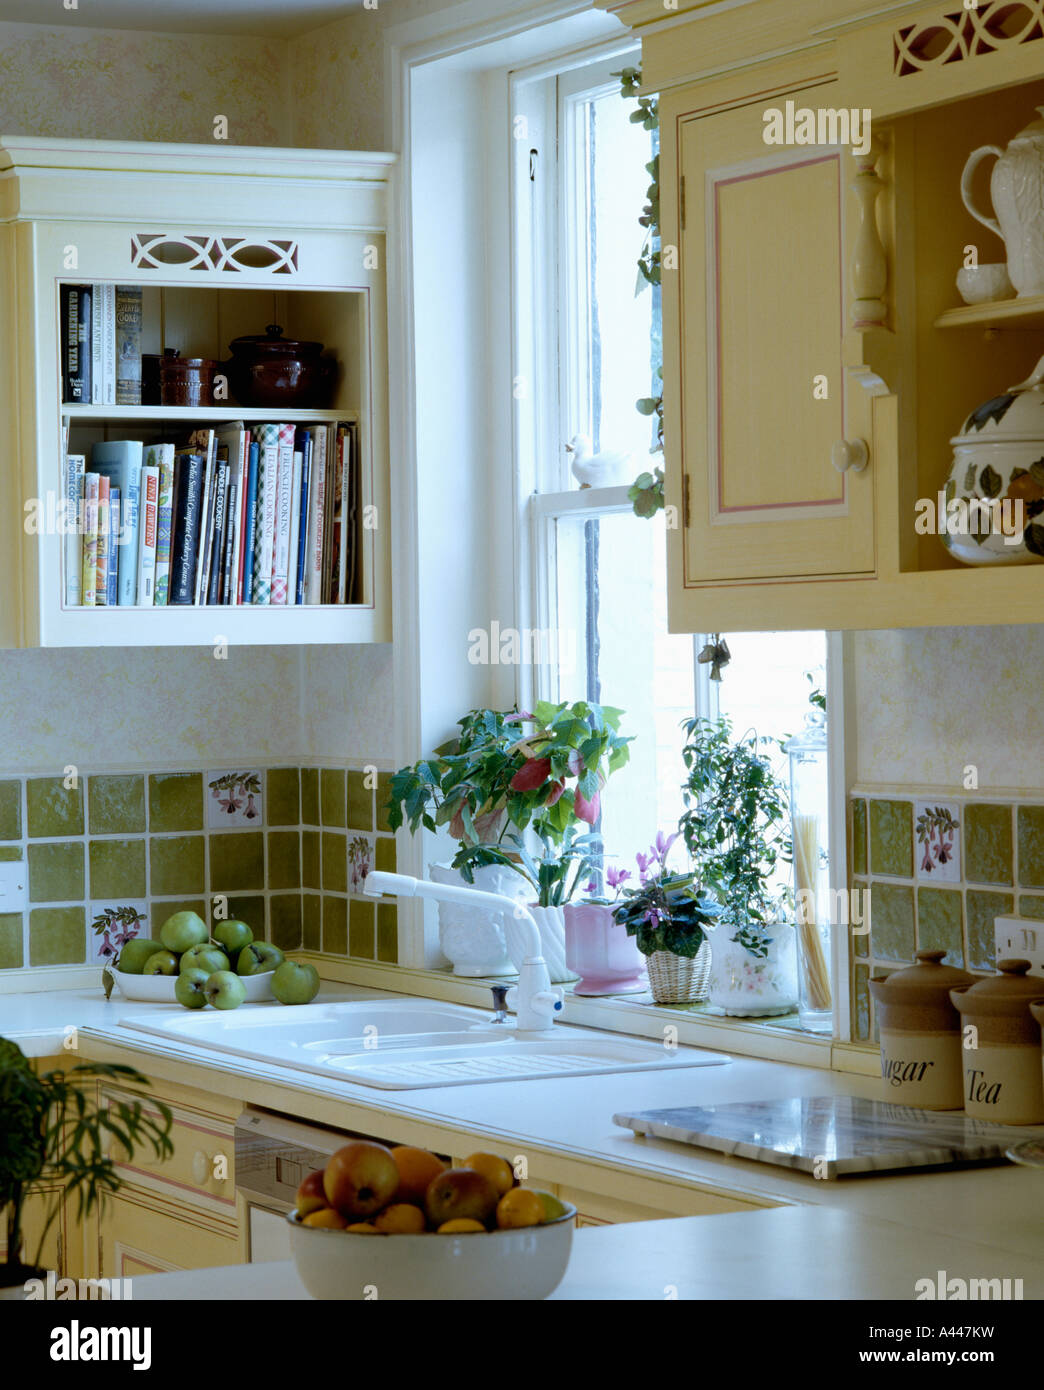 Small Country Kitchens Domestic Stock Photos & Small Country ...